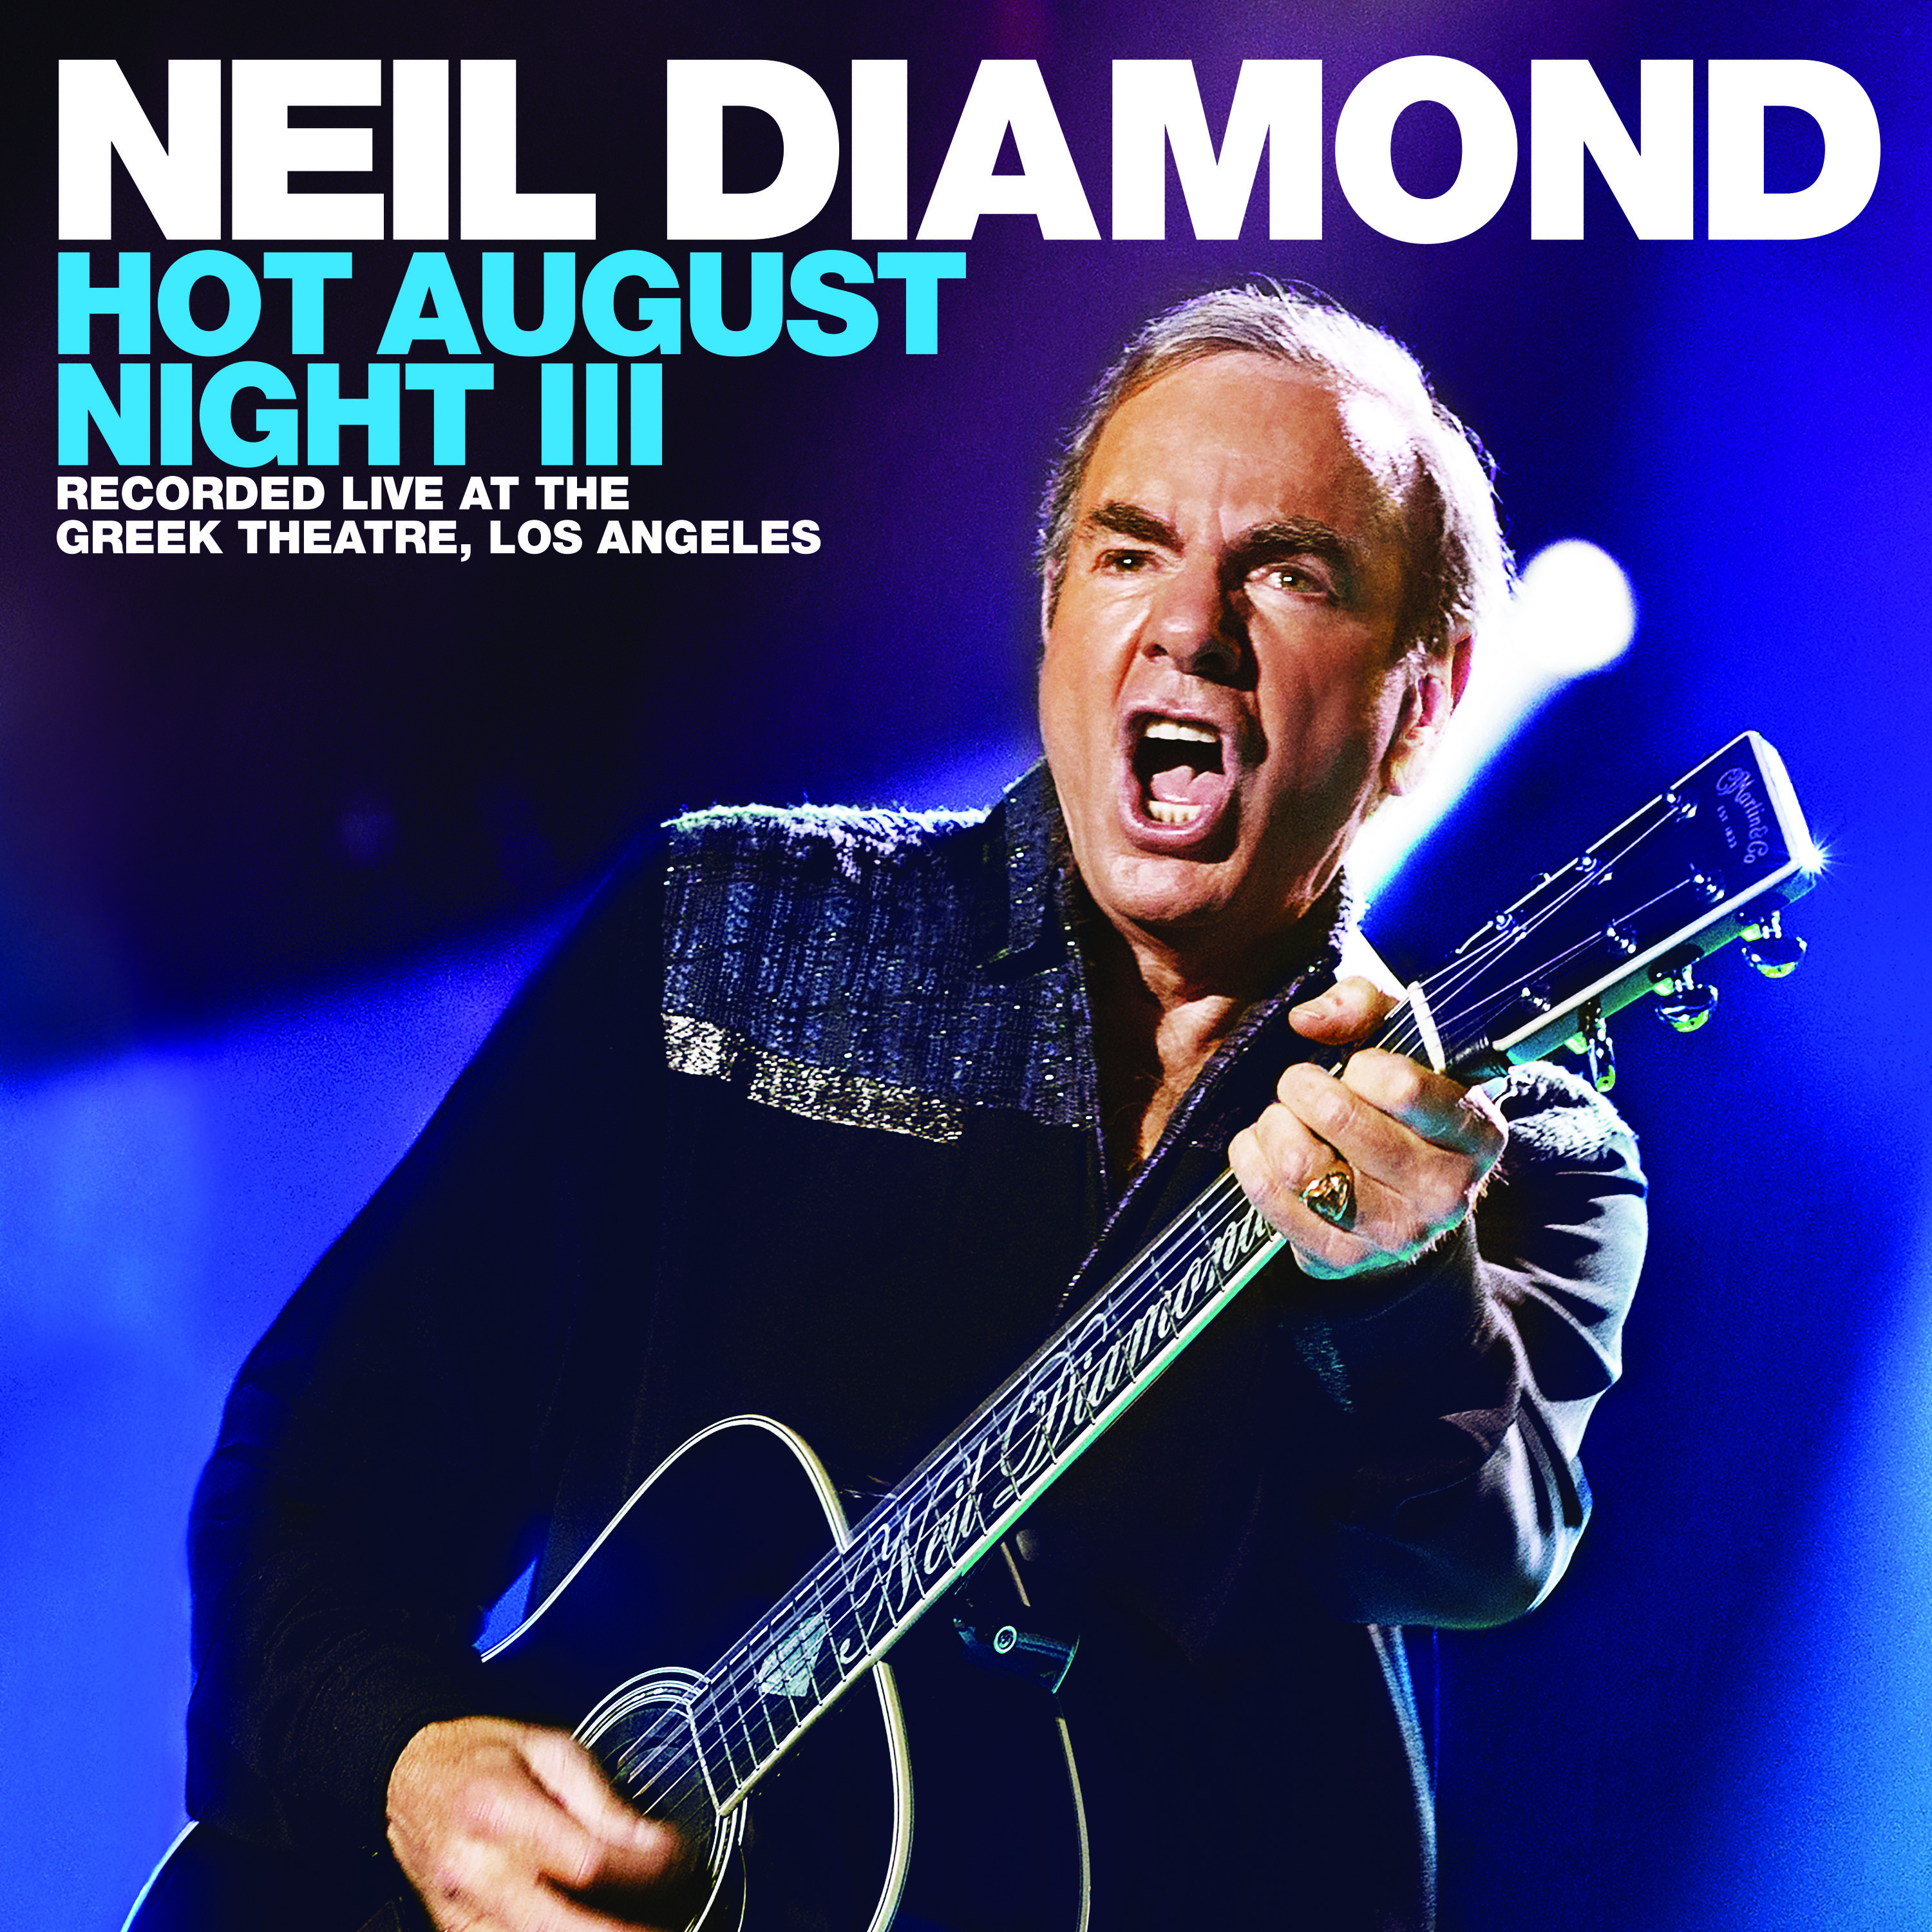 CAPITOL/UMe TO RELEASE NEIL DIAMOND · HOT AUGUST NIGHT III ON AUGUST